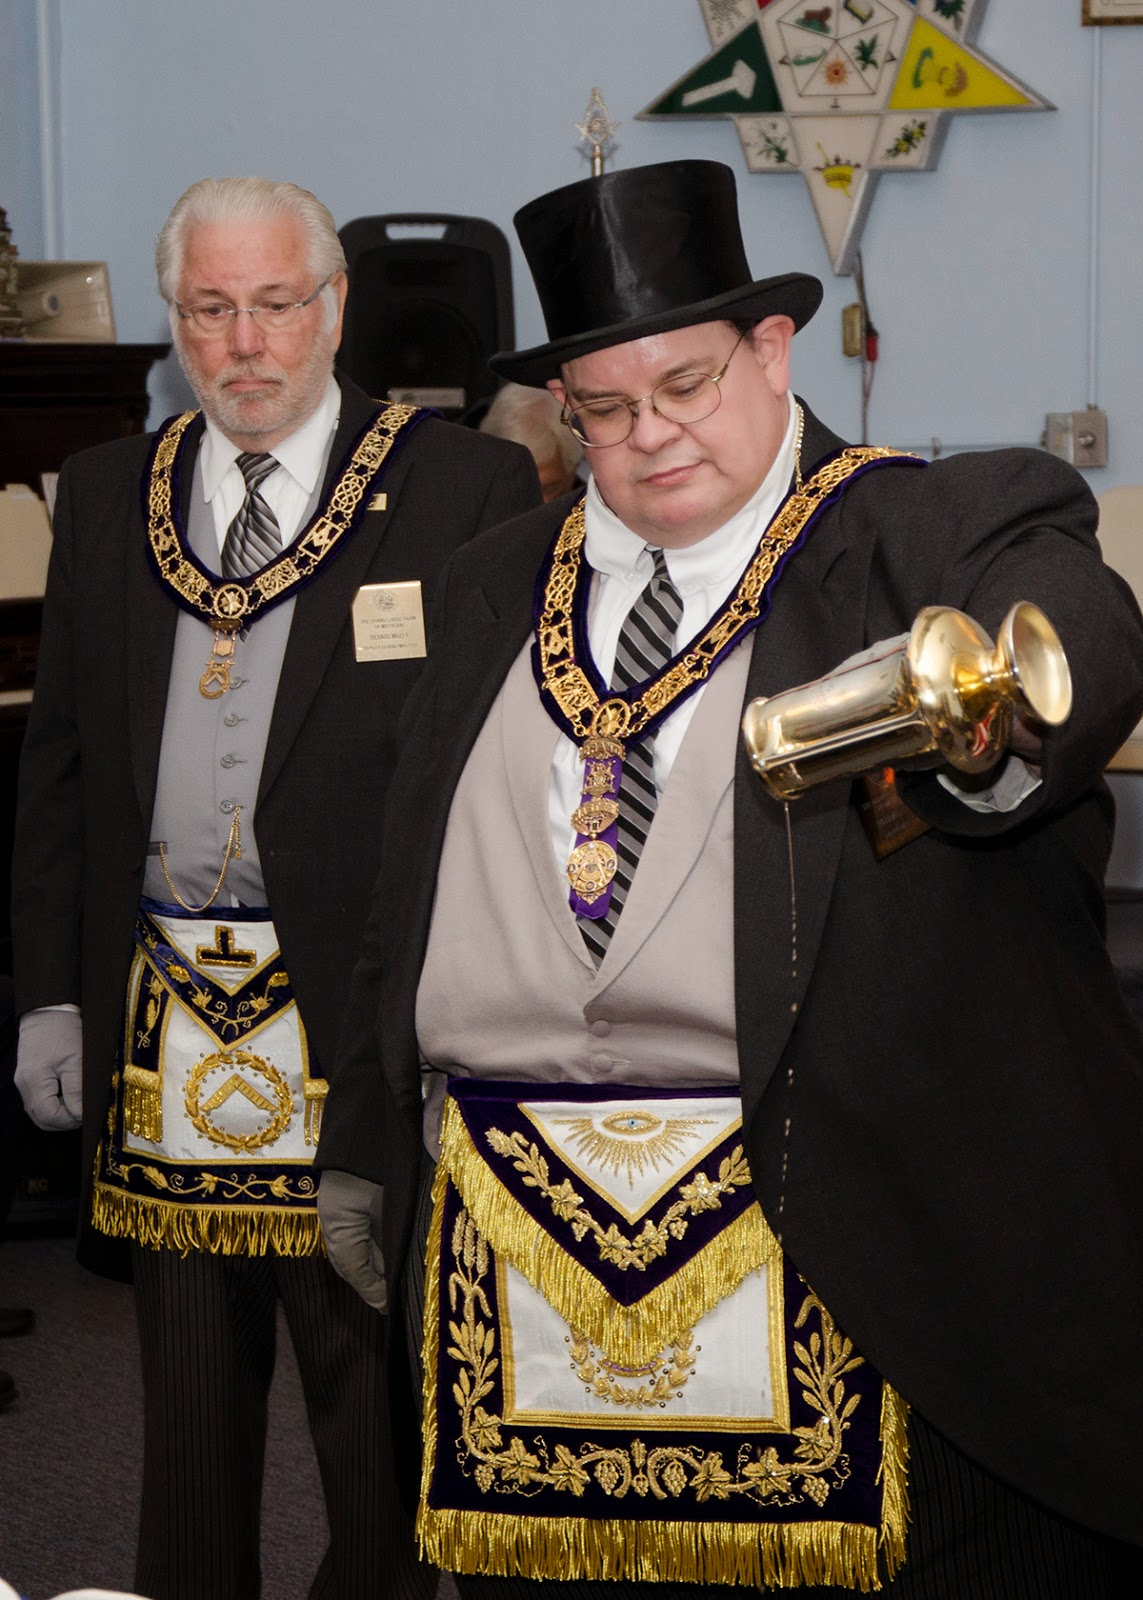 Past) Grand Master of Masons in Michigan - Yooper Style: Parma Re